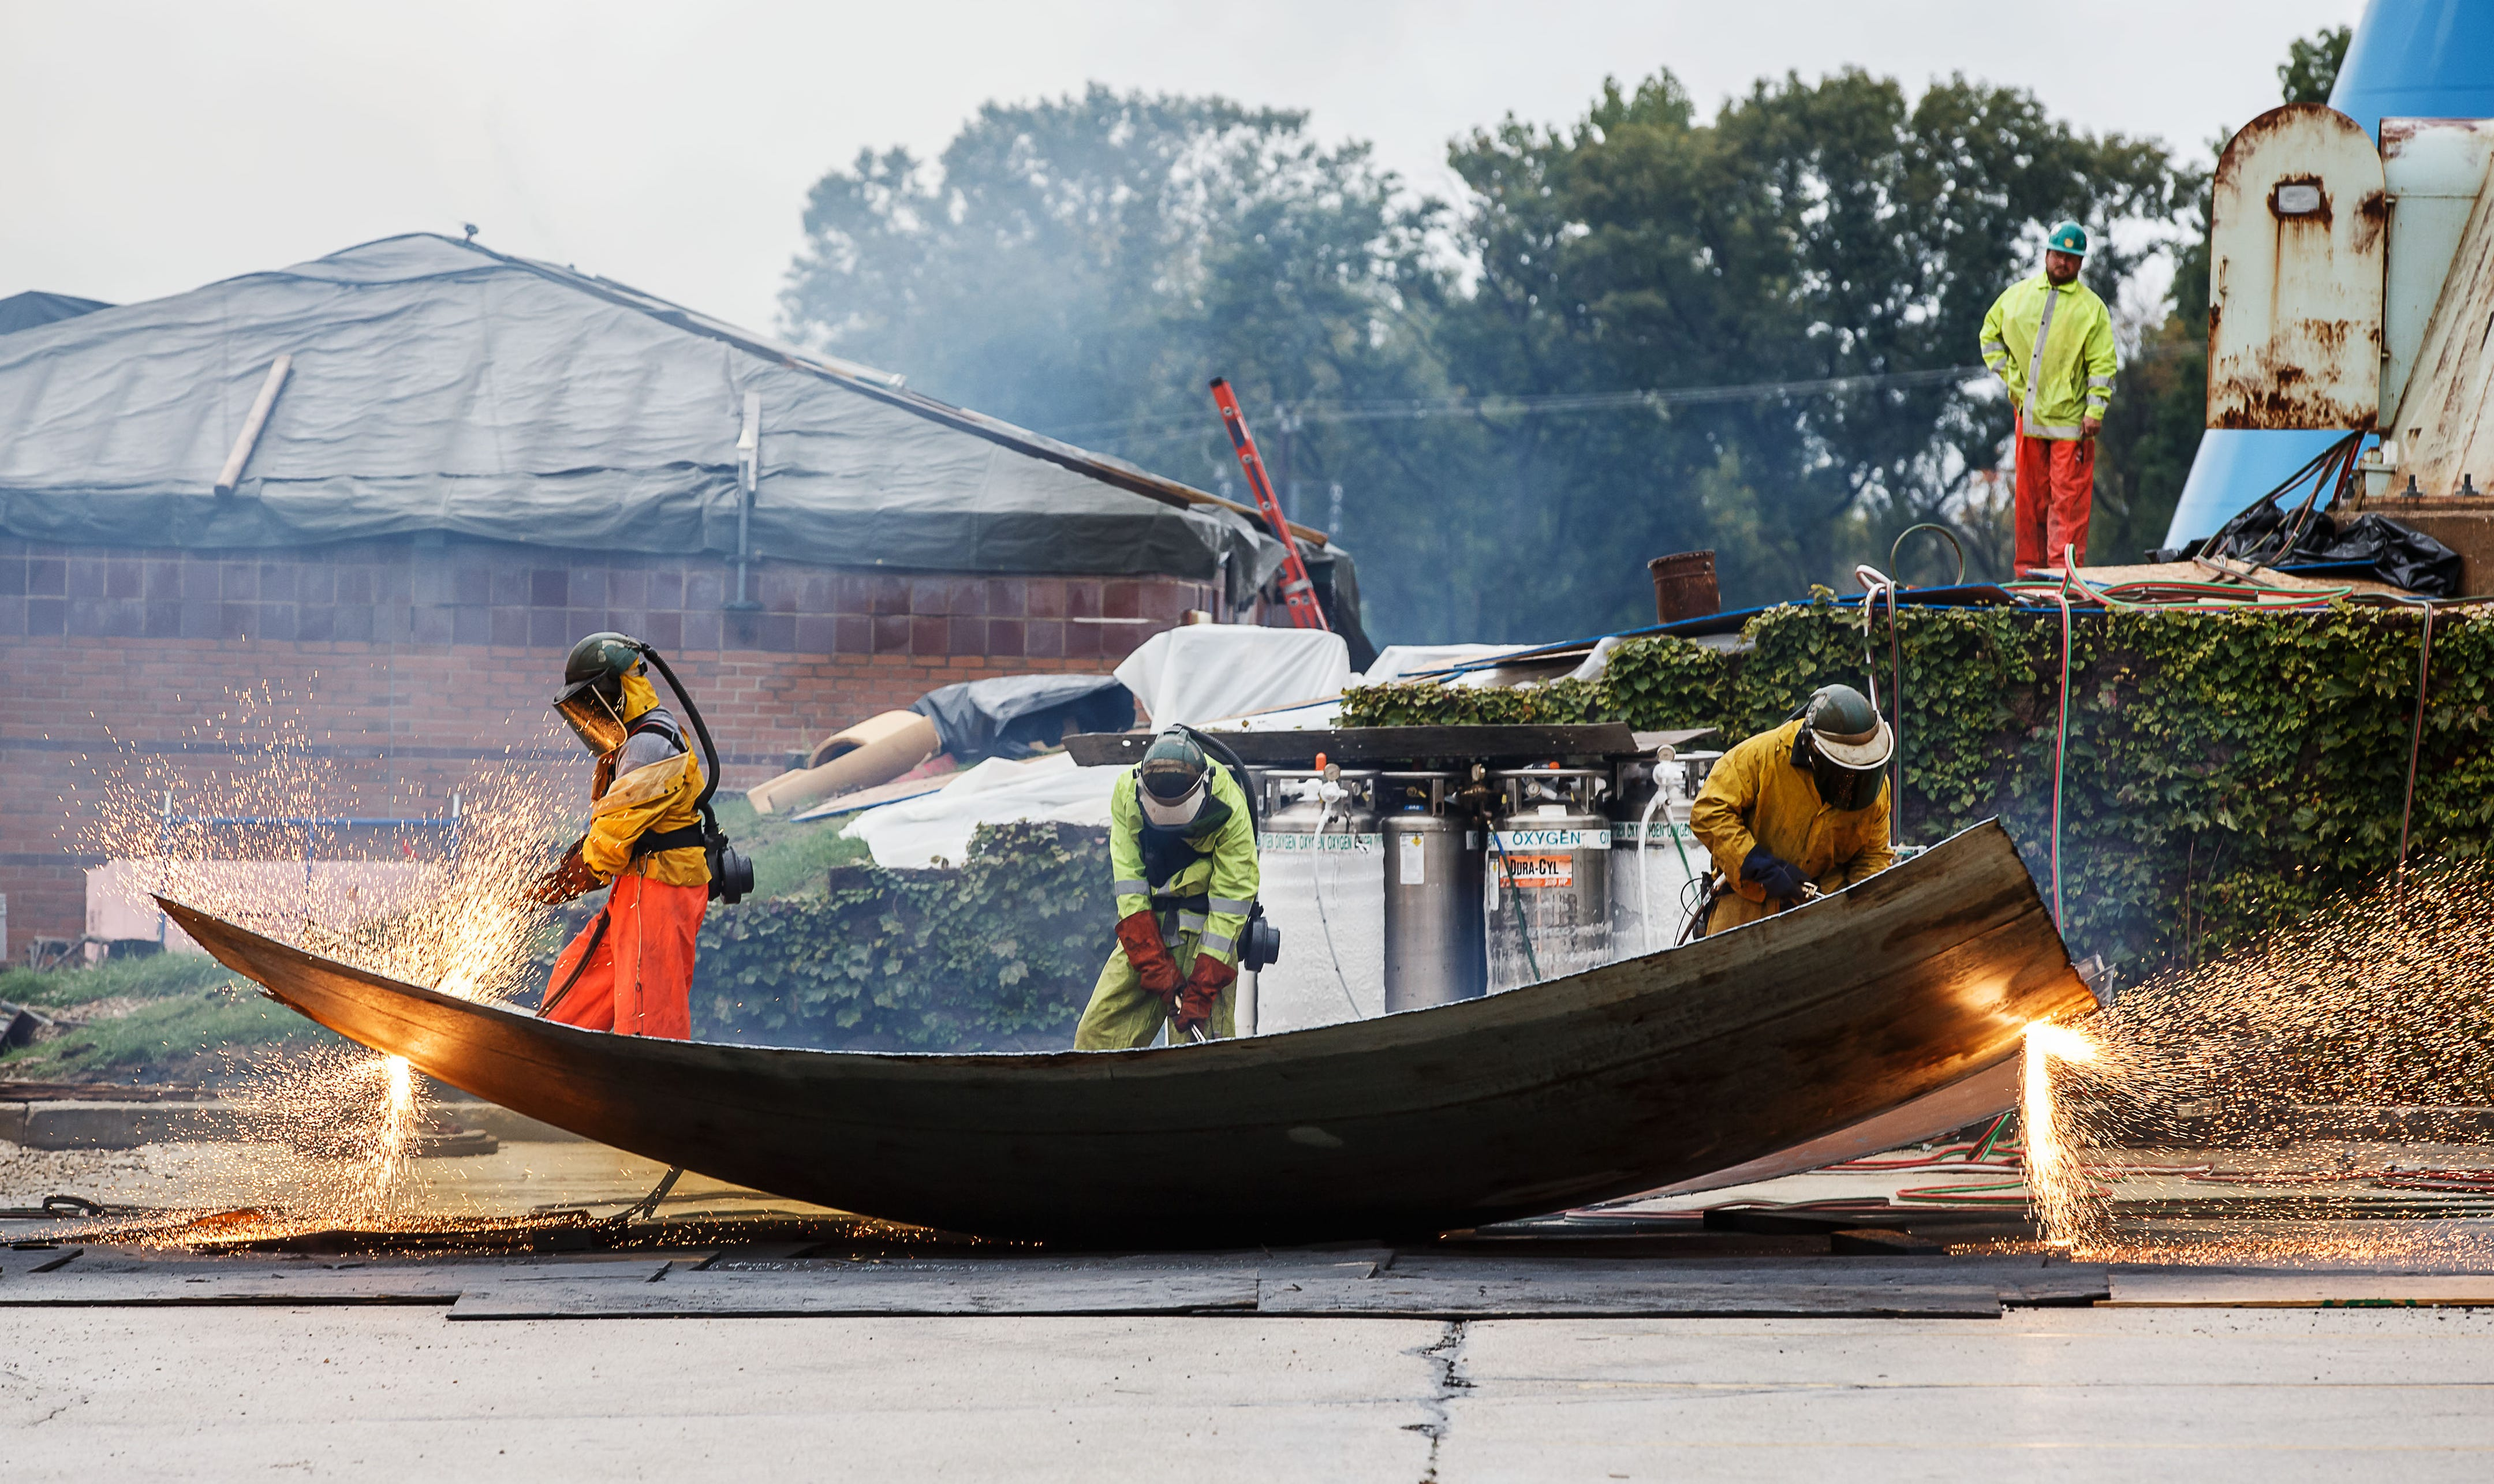 Employees of Iseler Demolition use torches to scrap out sections of the old Town of Pewaukee water tower on Monday, Oct. 1, 2018. The tower is scheduled to be completely demolished by Tuesday afternoon.